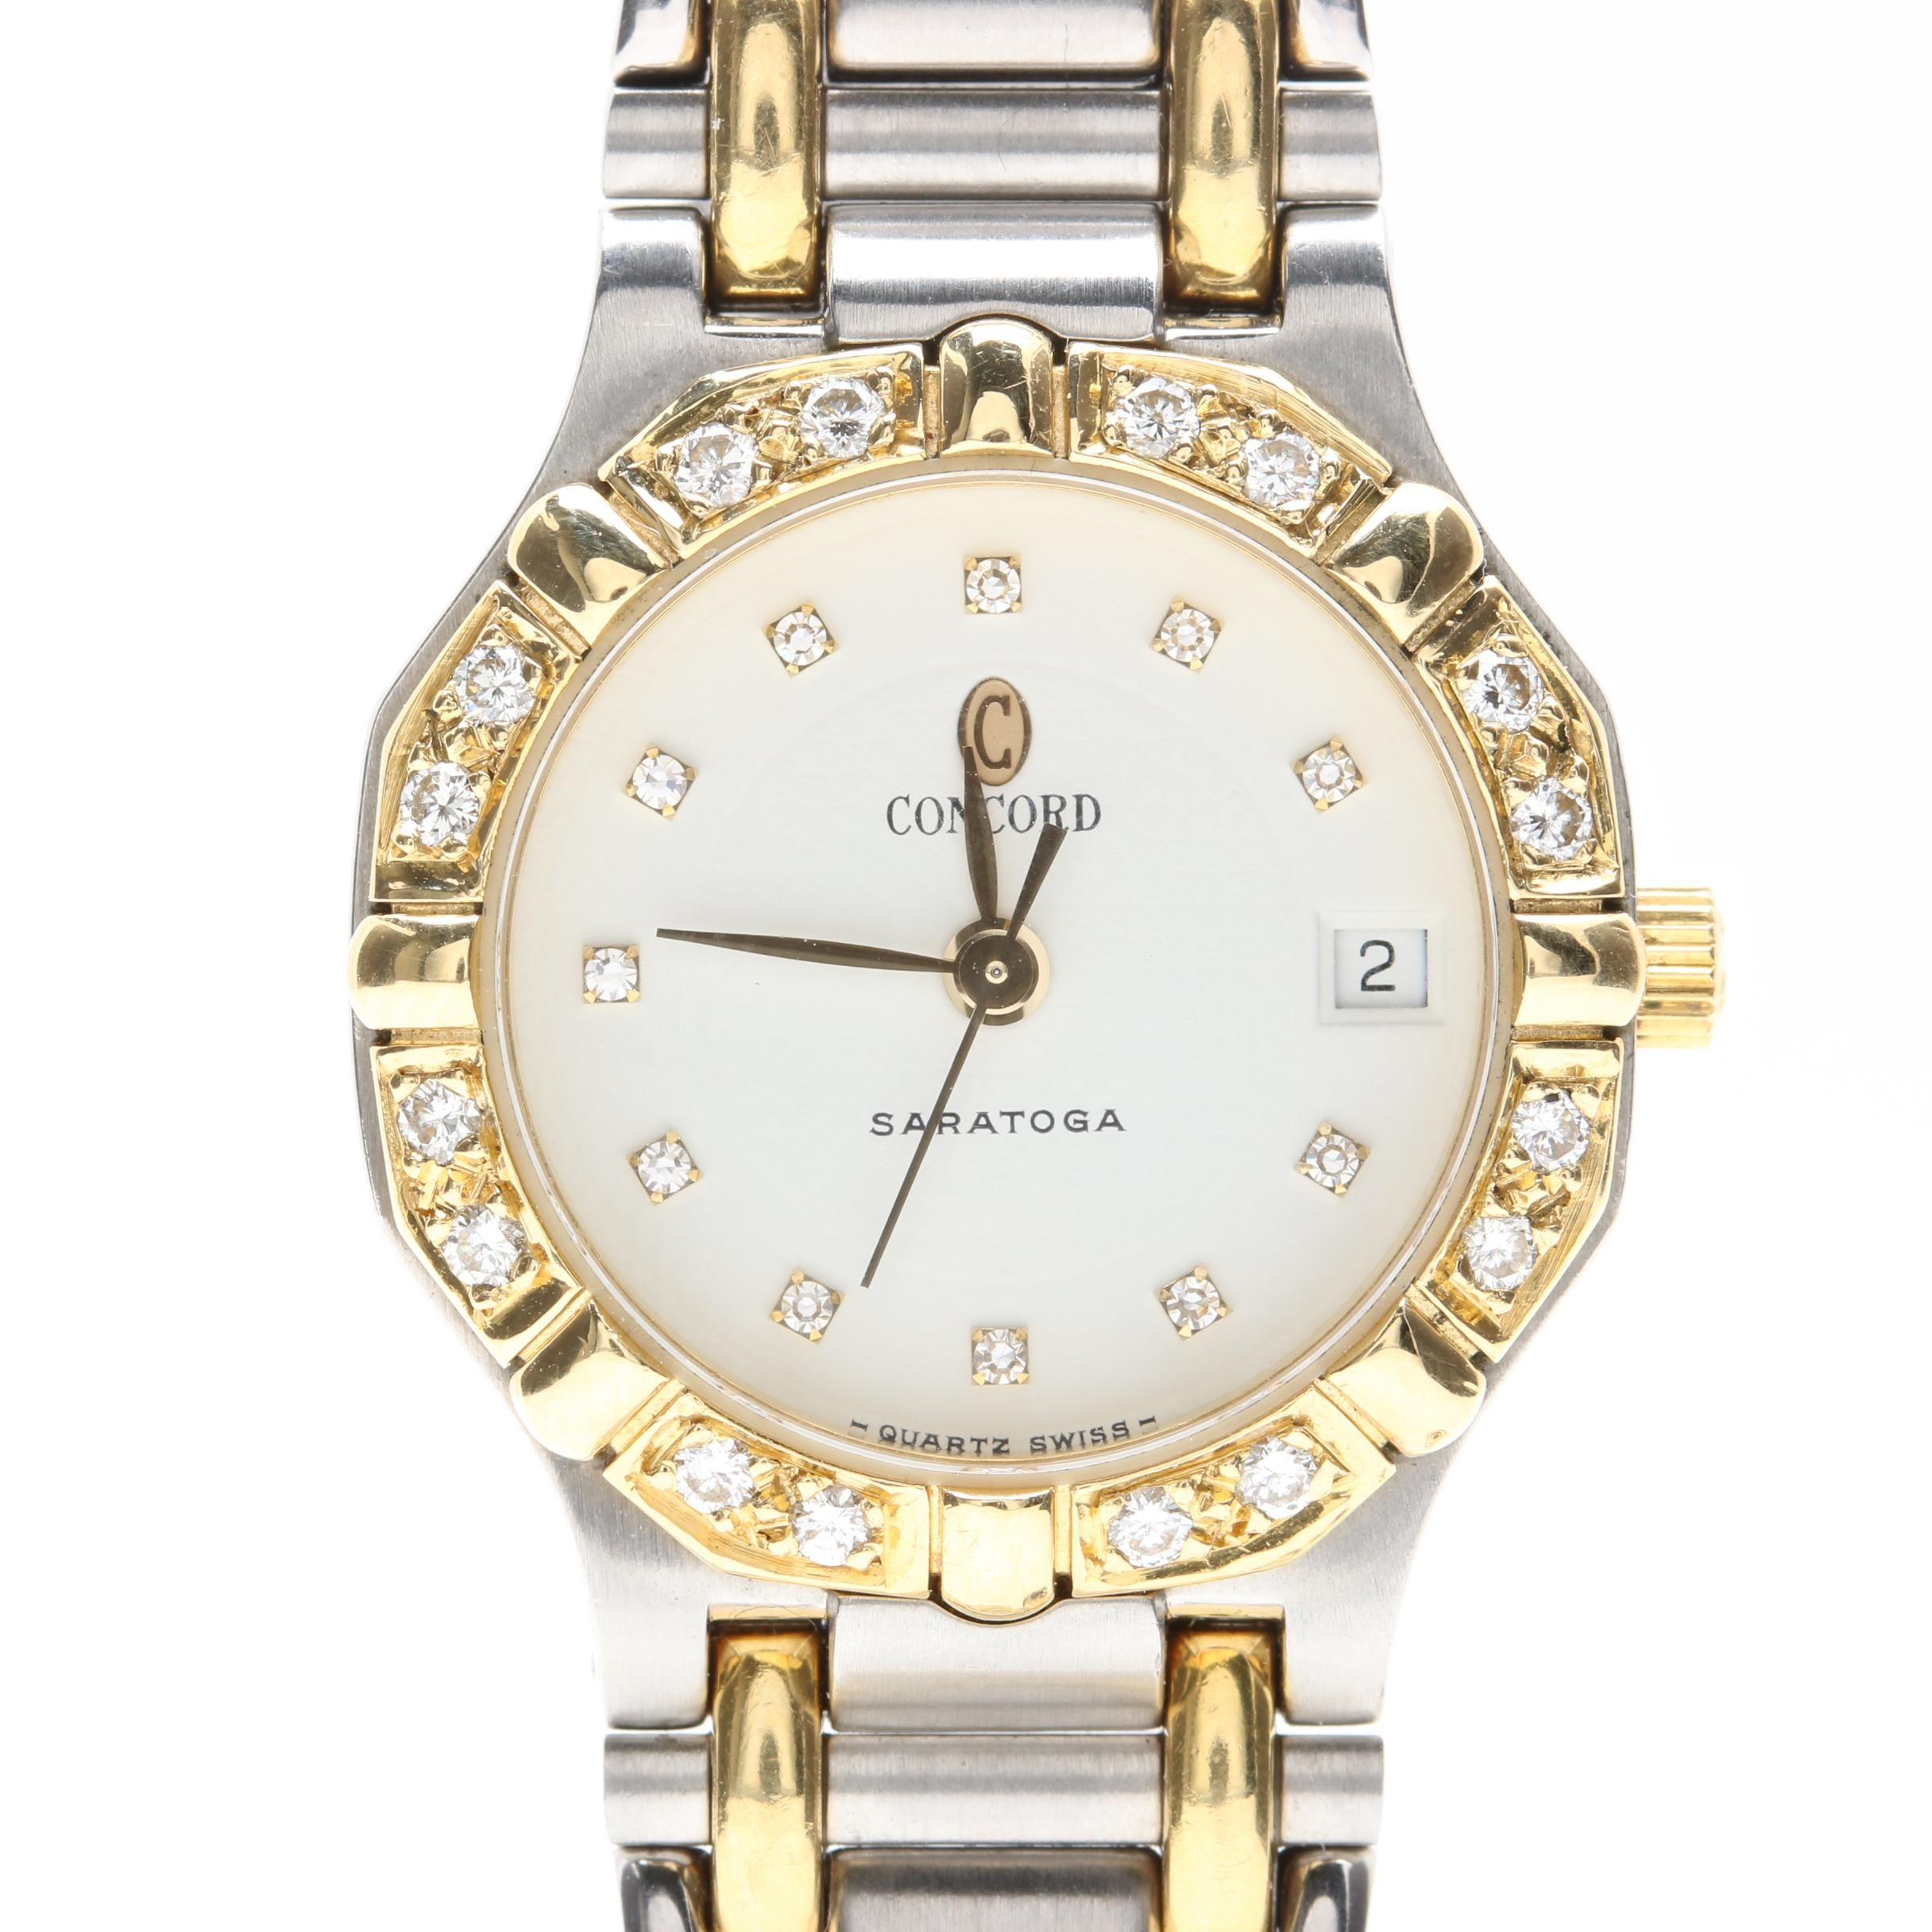 Stainless Steel and 18K Diamond Accented Concord Saratoga Wristwatch